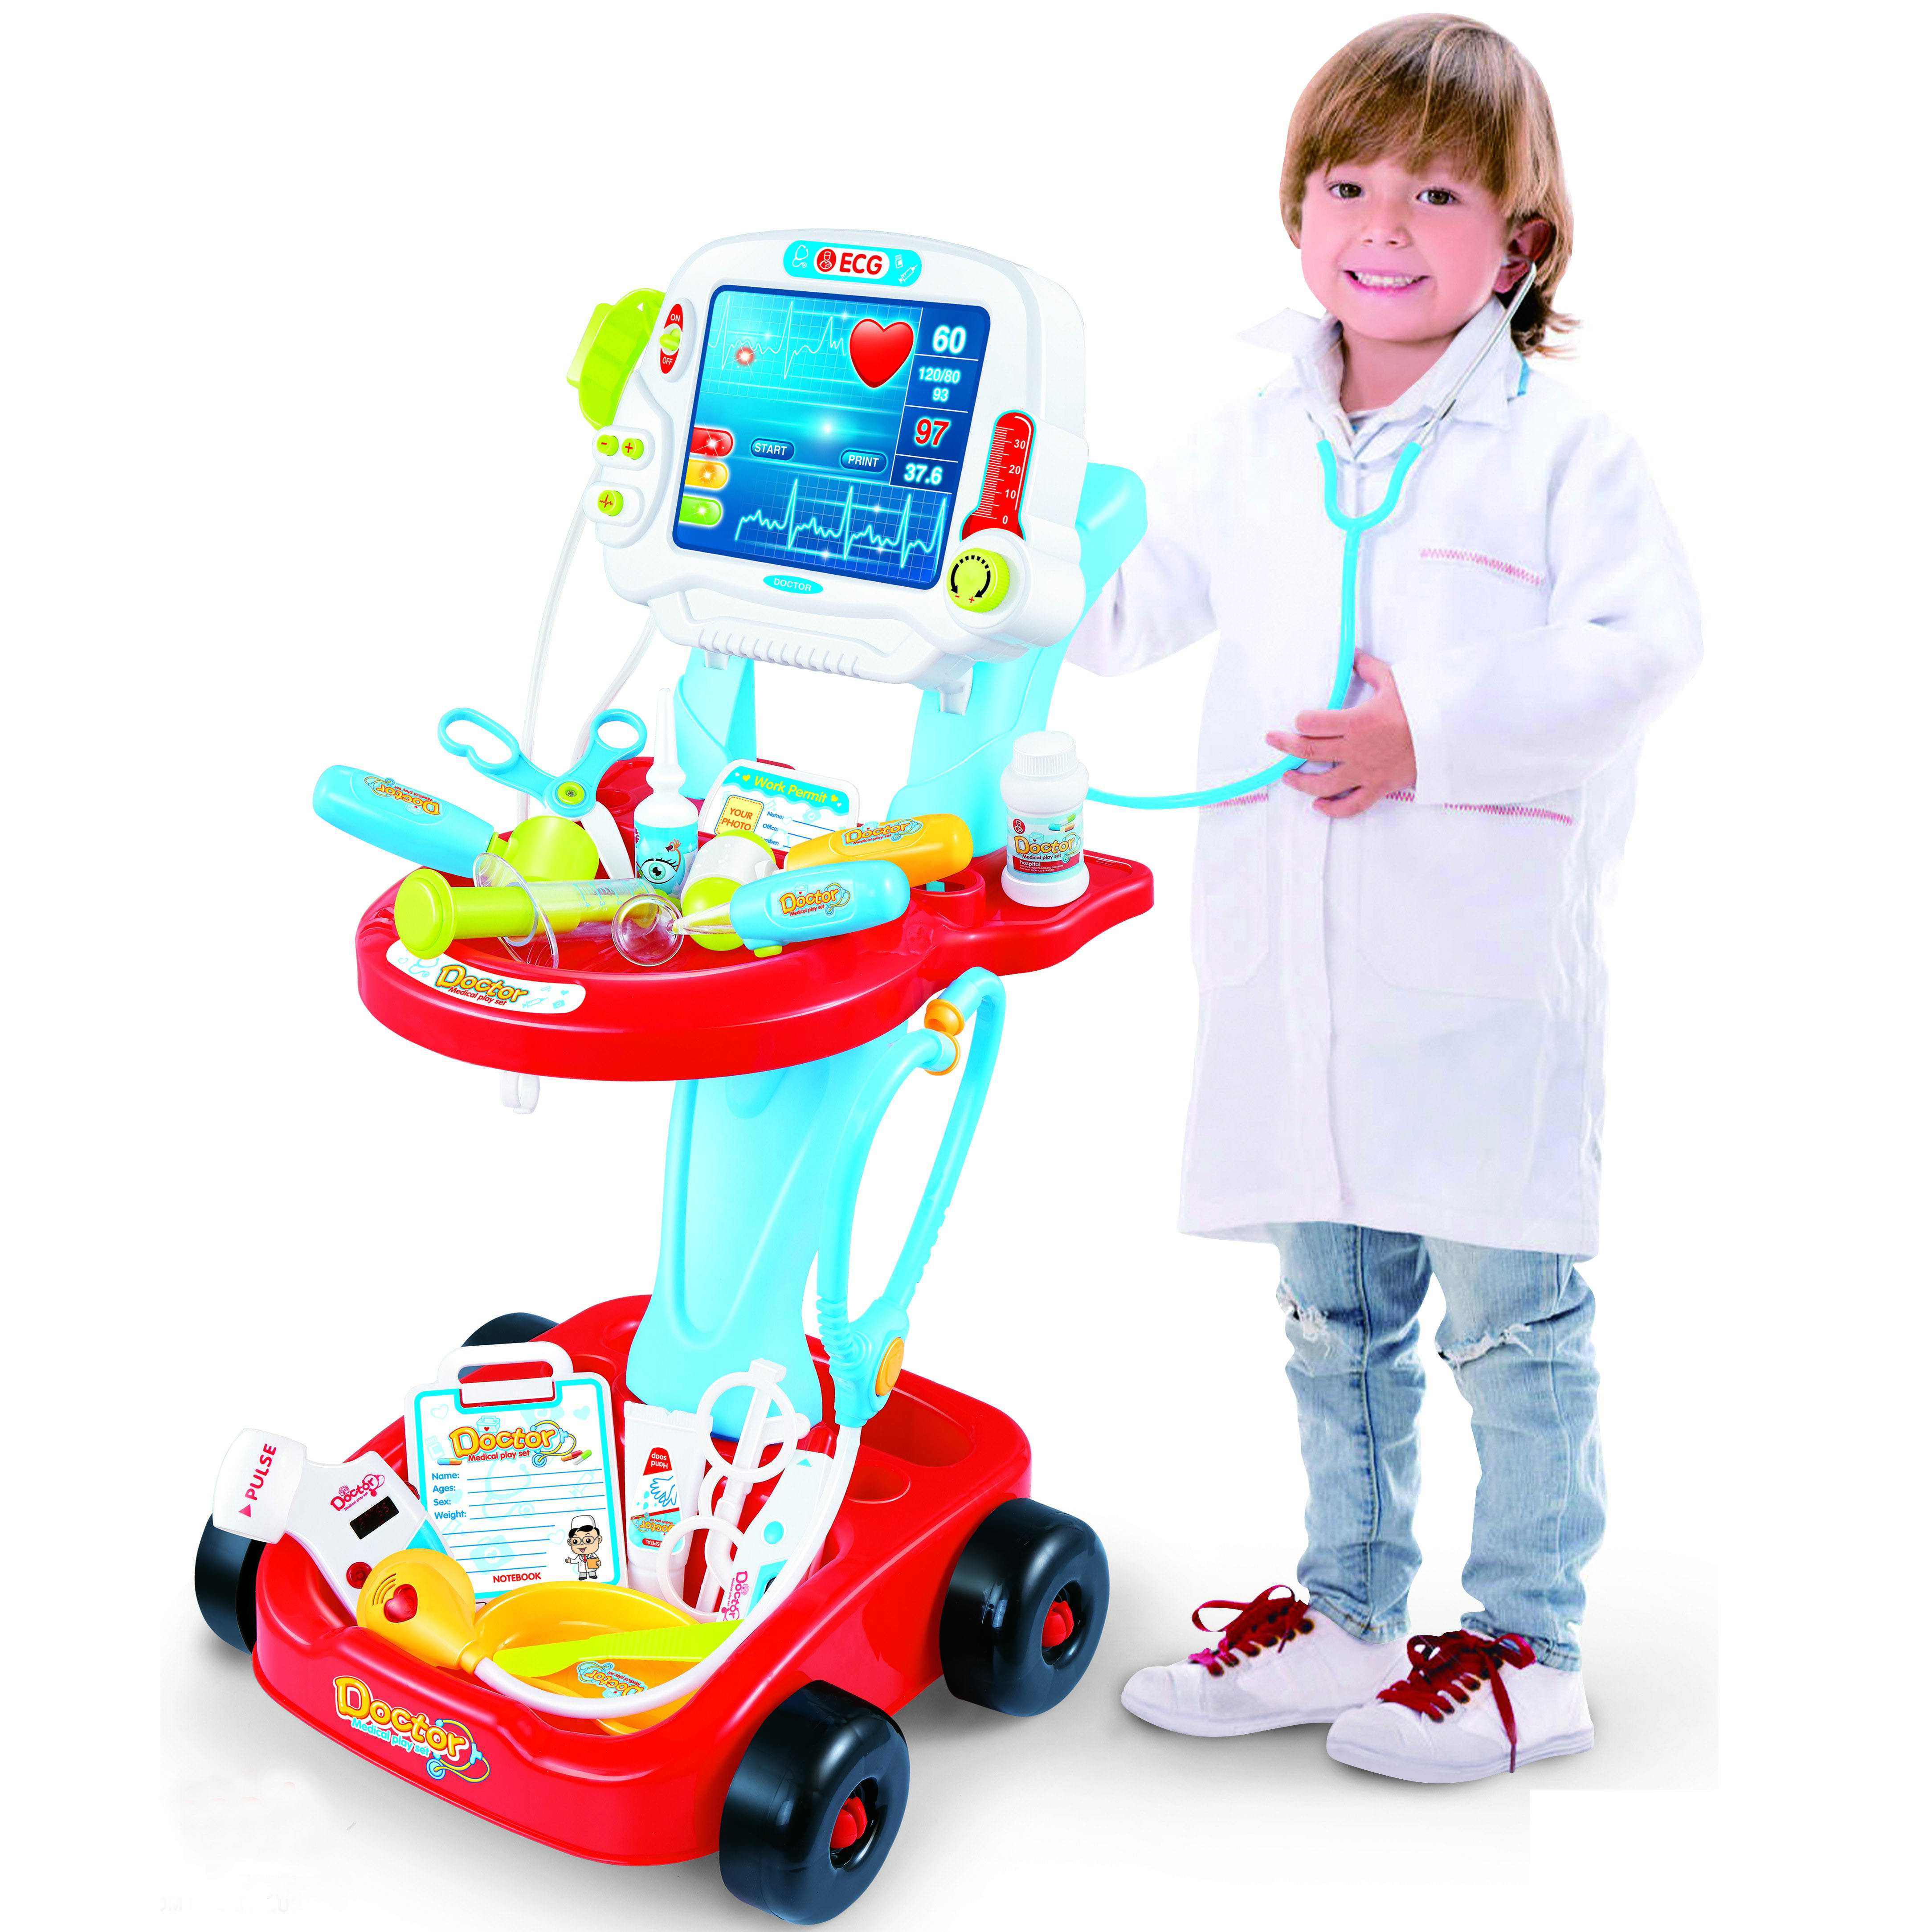 Children Toys Kid Popular Toys Funny Electronic Plastic Musical Learning Educational Doctor Toys for Kids 2019